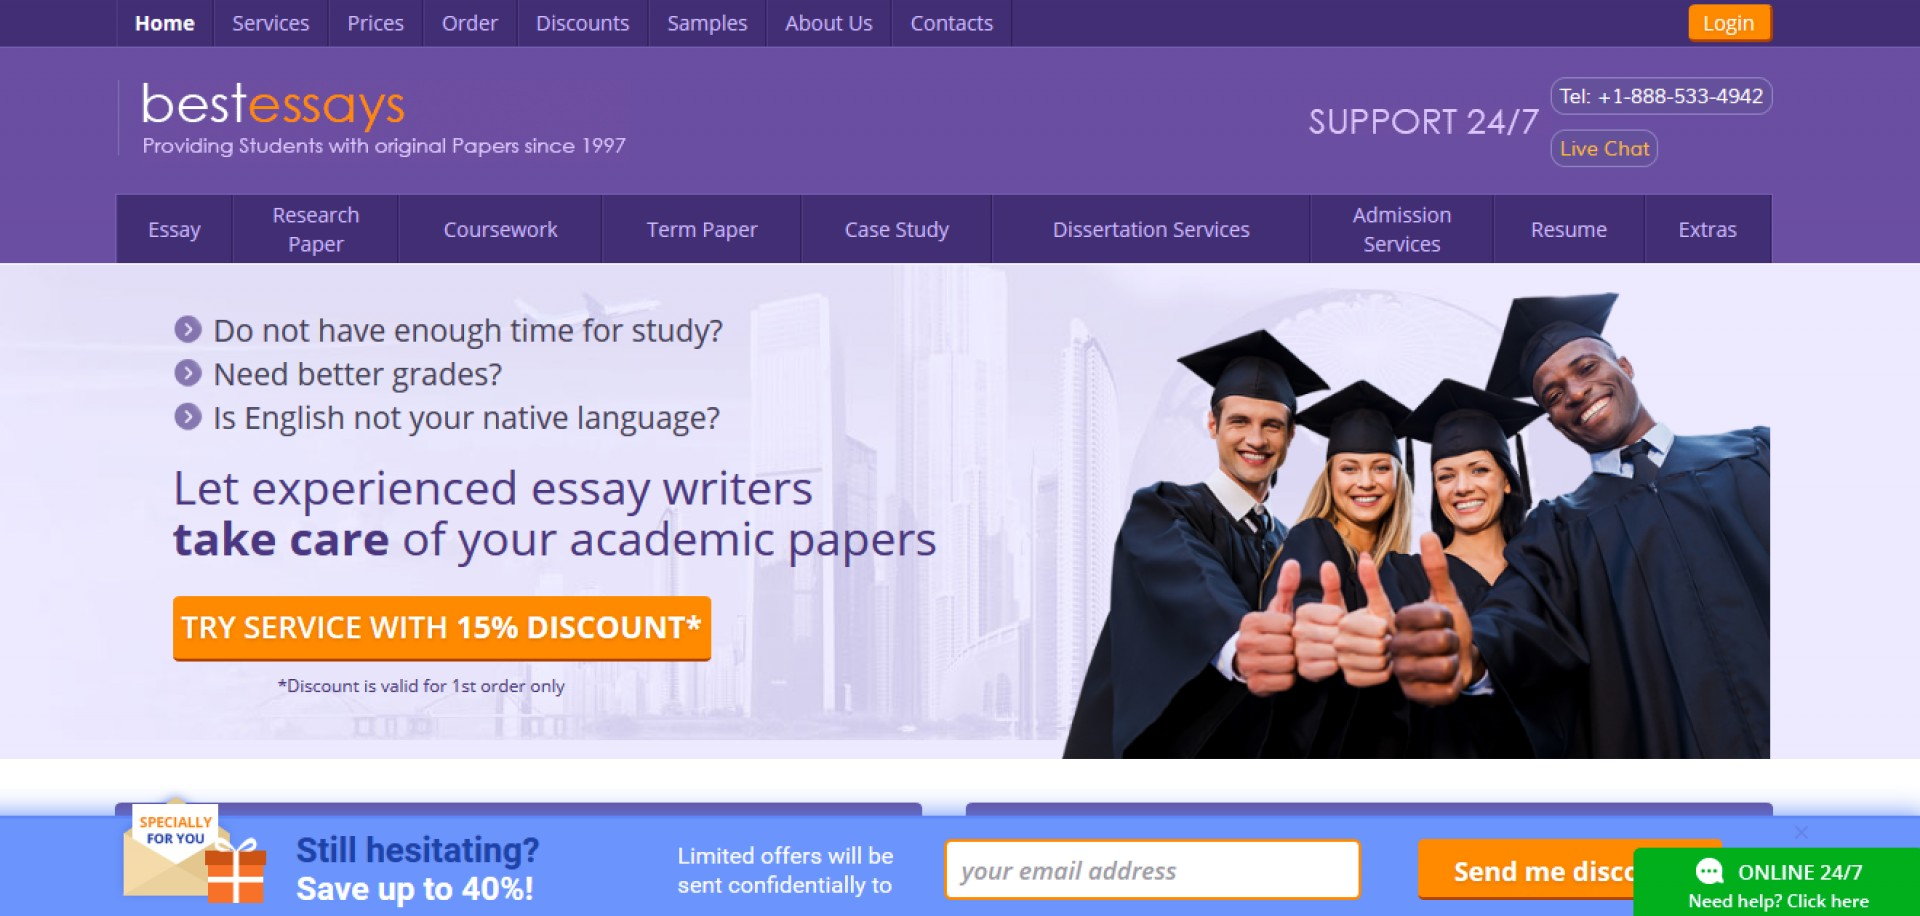 005 Essay Example Custom Writing Service Professional Site Online Impressive Reviews In India Services Australia 1920